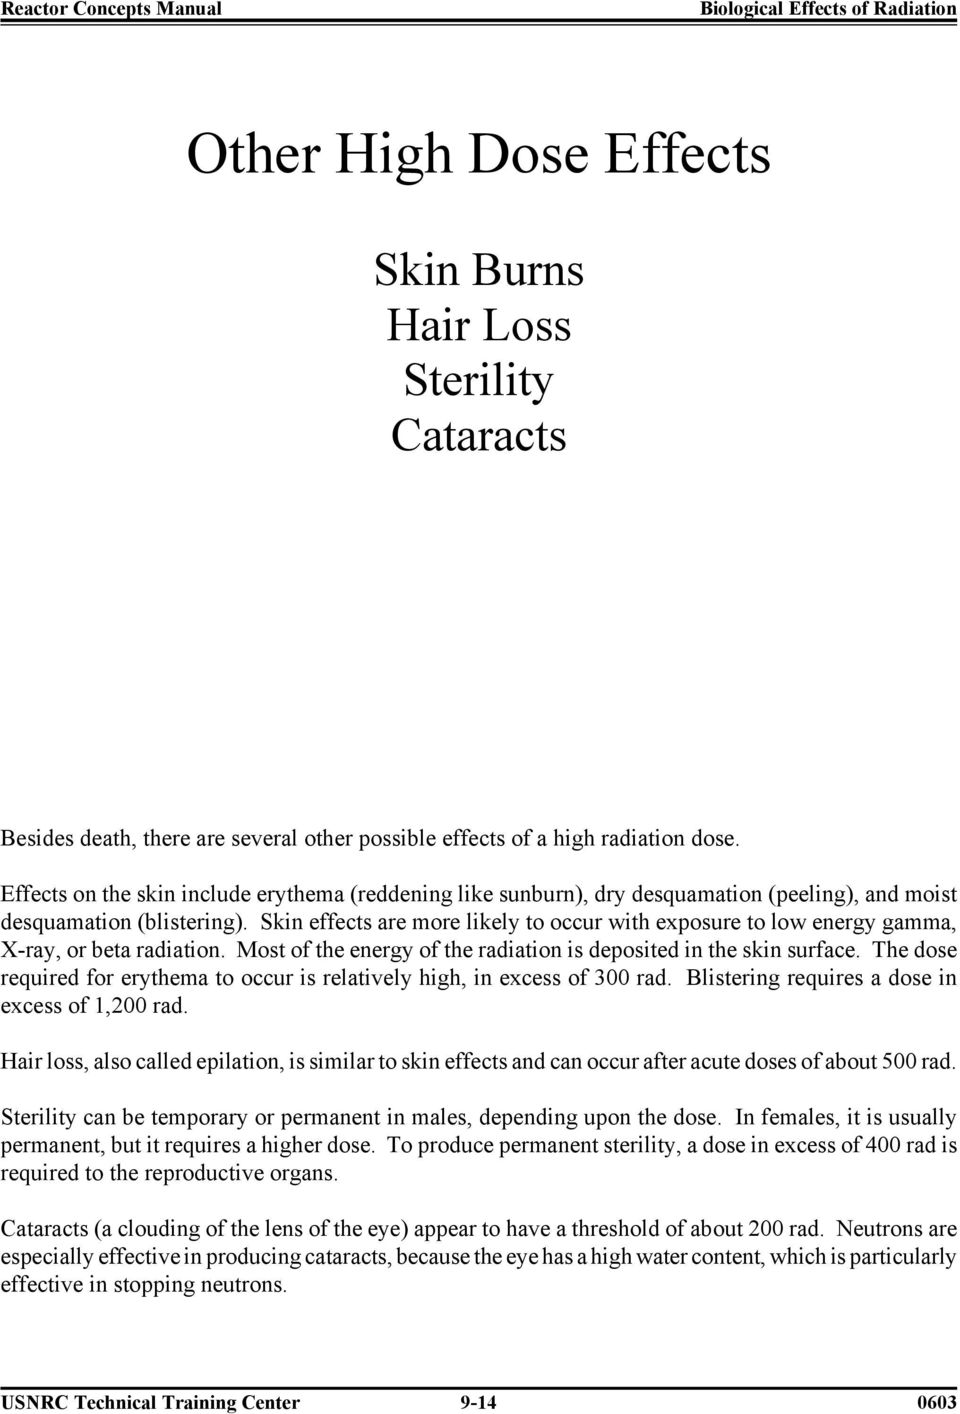 Skin effects are more likely to occur with exposure to low energy gamma, X-ray, or beta radiation. Most of the energy of the radiation is deposited in the skin surface.